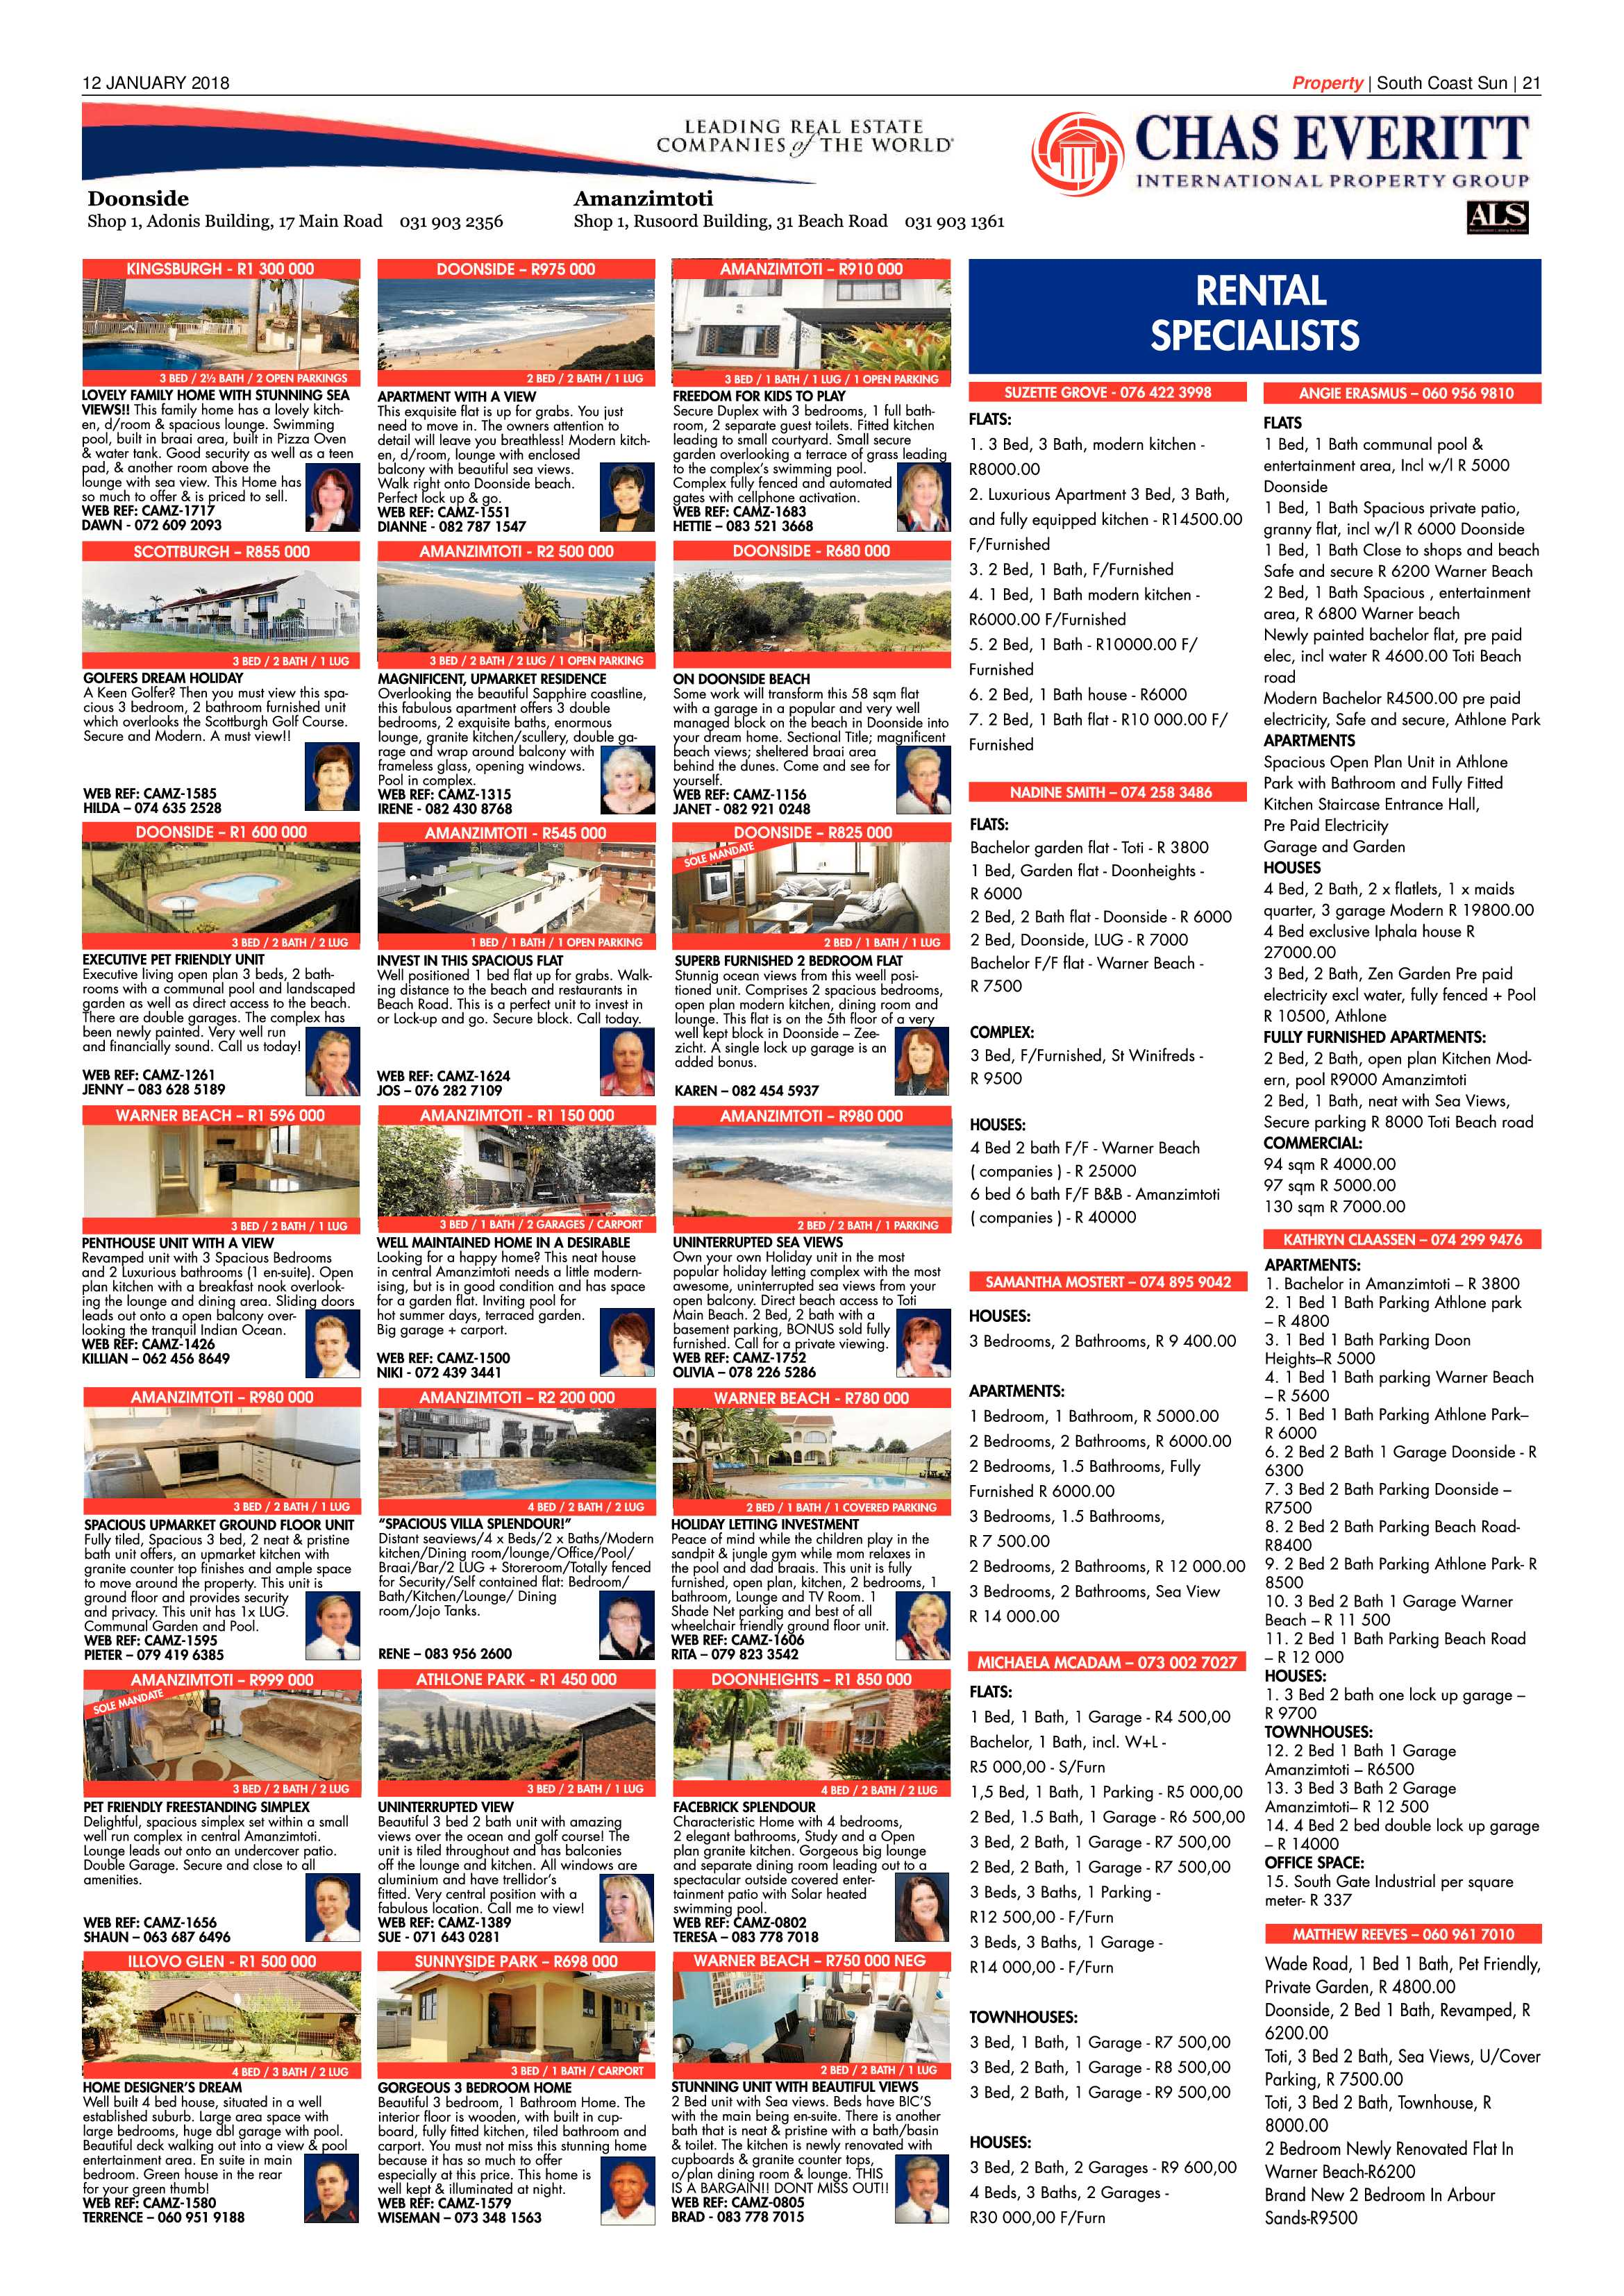 12-january-2018-epapers-page-21